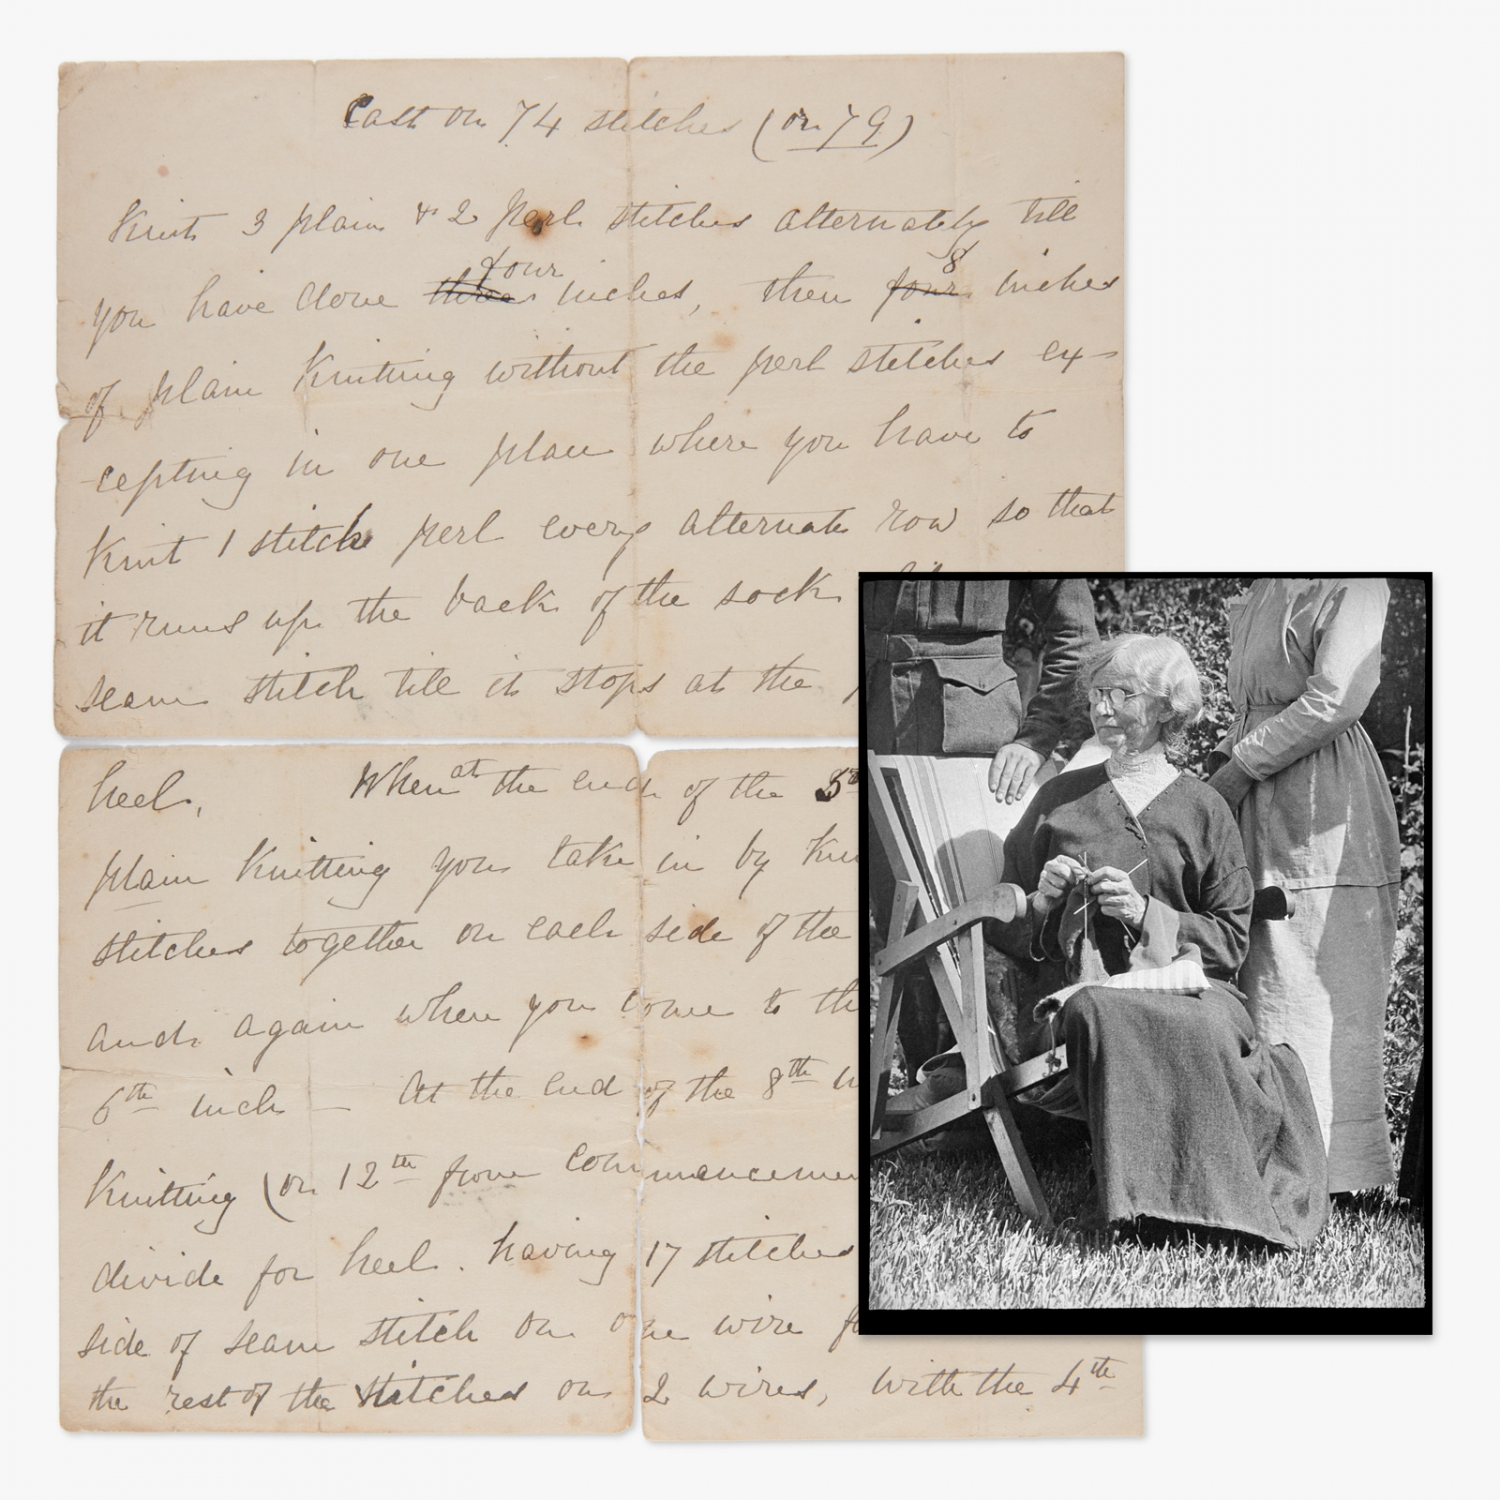 Handwritten letter overlaid with black and white photograph.